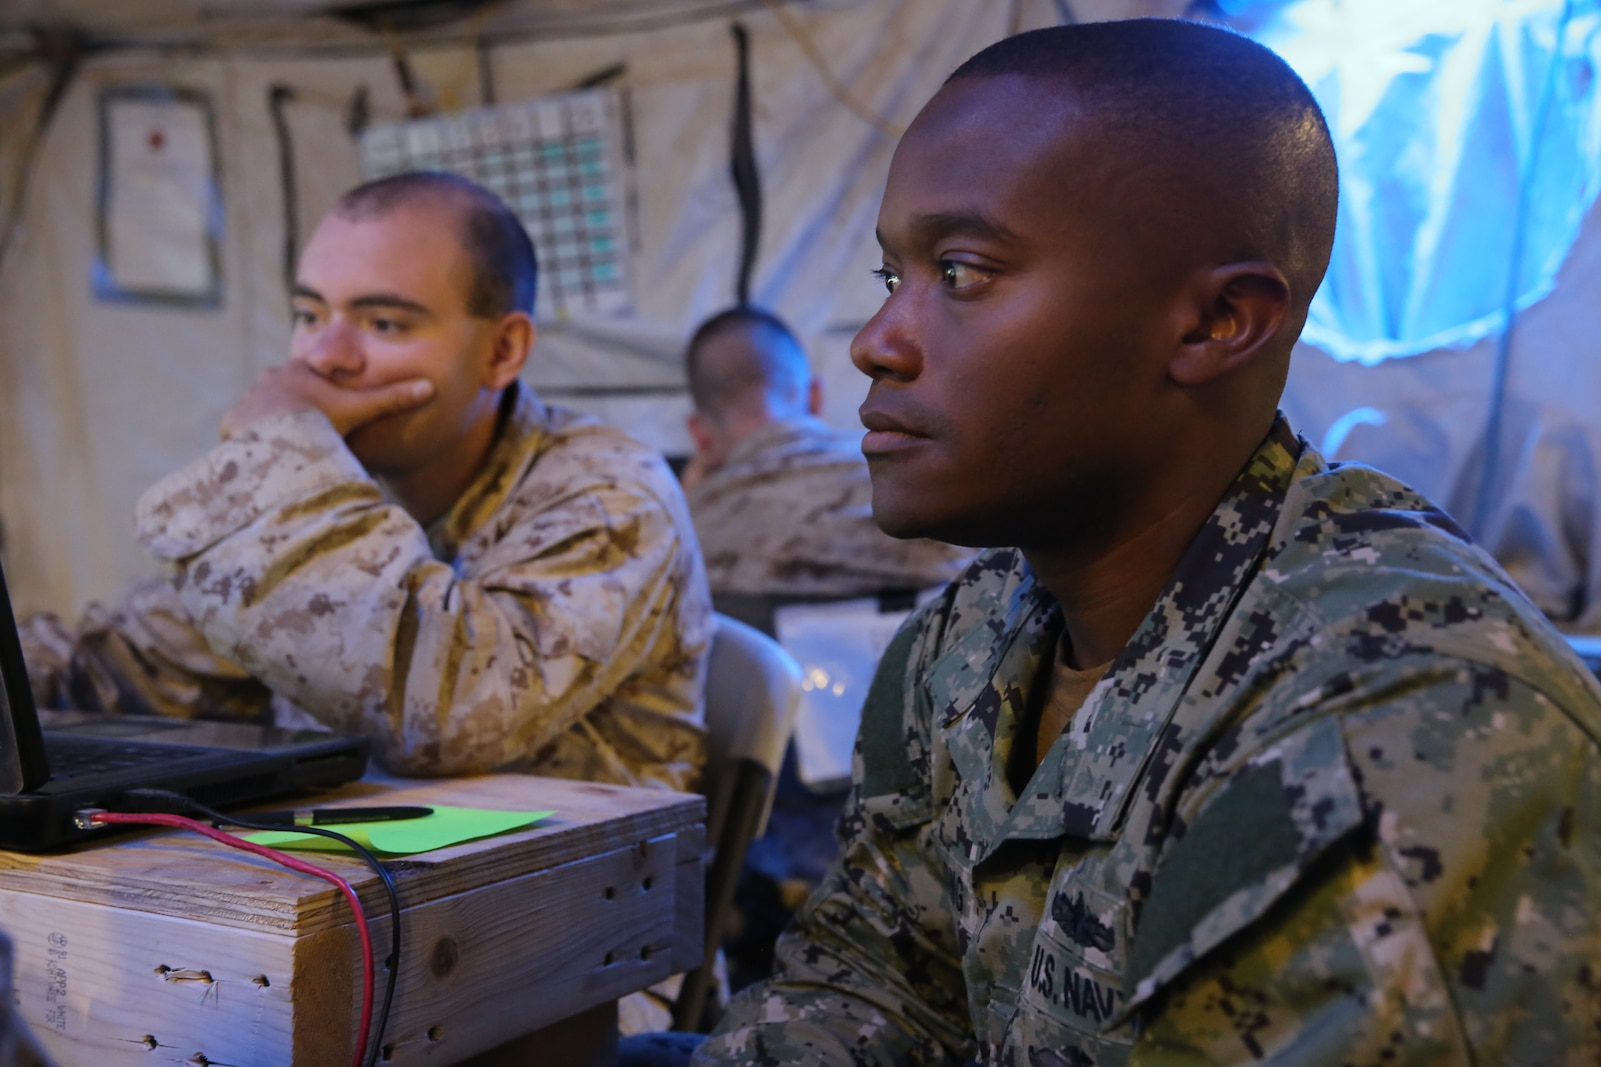 Navy Lt. Cmdr. Jonathan Long, right, representing the fires officer of the Expeditionary Strike Group 3, and Cpl. Charles Stephens, a command control communications computer specialist with 1st Marine Expeditionary Brigade, practice coordinating fire missions during Large Scale Exercise 2014 here, Aug. 10, 2014. LSE-14 is a bilateral training exercise being conducted by 1st MEB to build U.S. and Canadian forces' joint capabilities through live, simulated, and constructive military training activities. The exercise also promotes interoperability and cooperation between joint, coalition, and U.S. Marine Forces, providing the opportunity to exchange knowledge and learn from each other, establish personal and professional relationships and hone individual and small-unit skills through challenging, complex and realistic live scenarios with special focus on building combat power ashore.